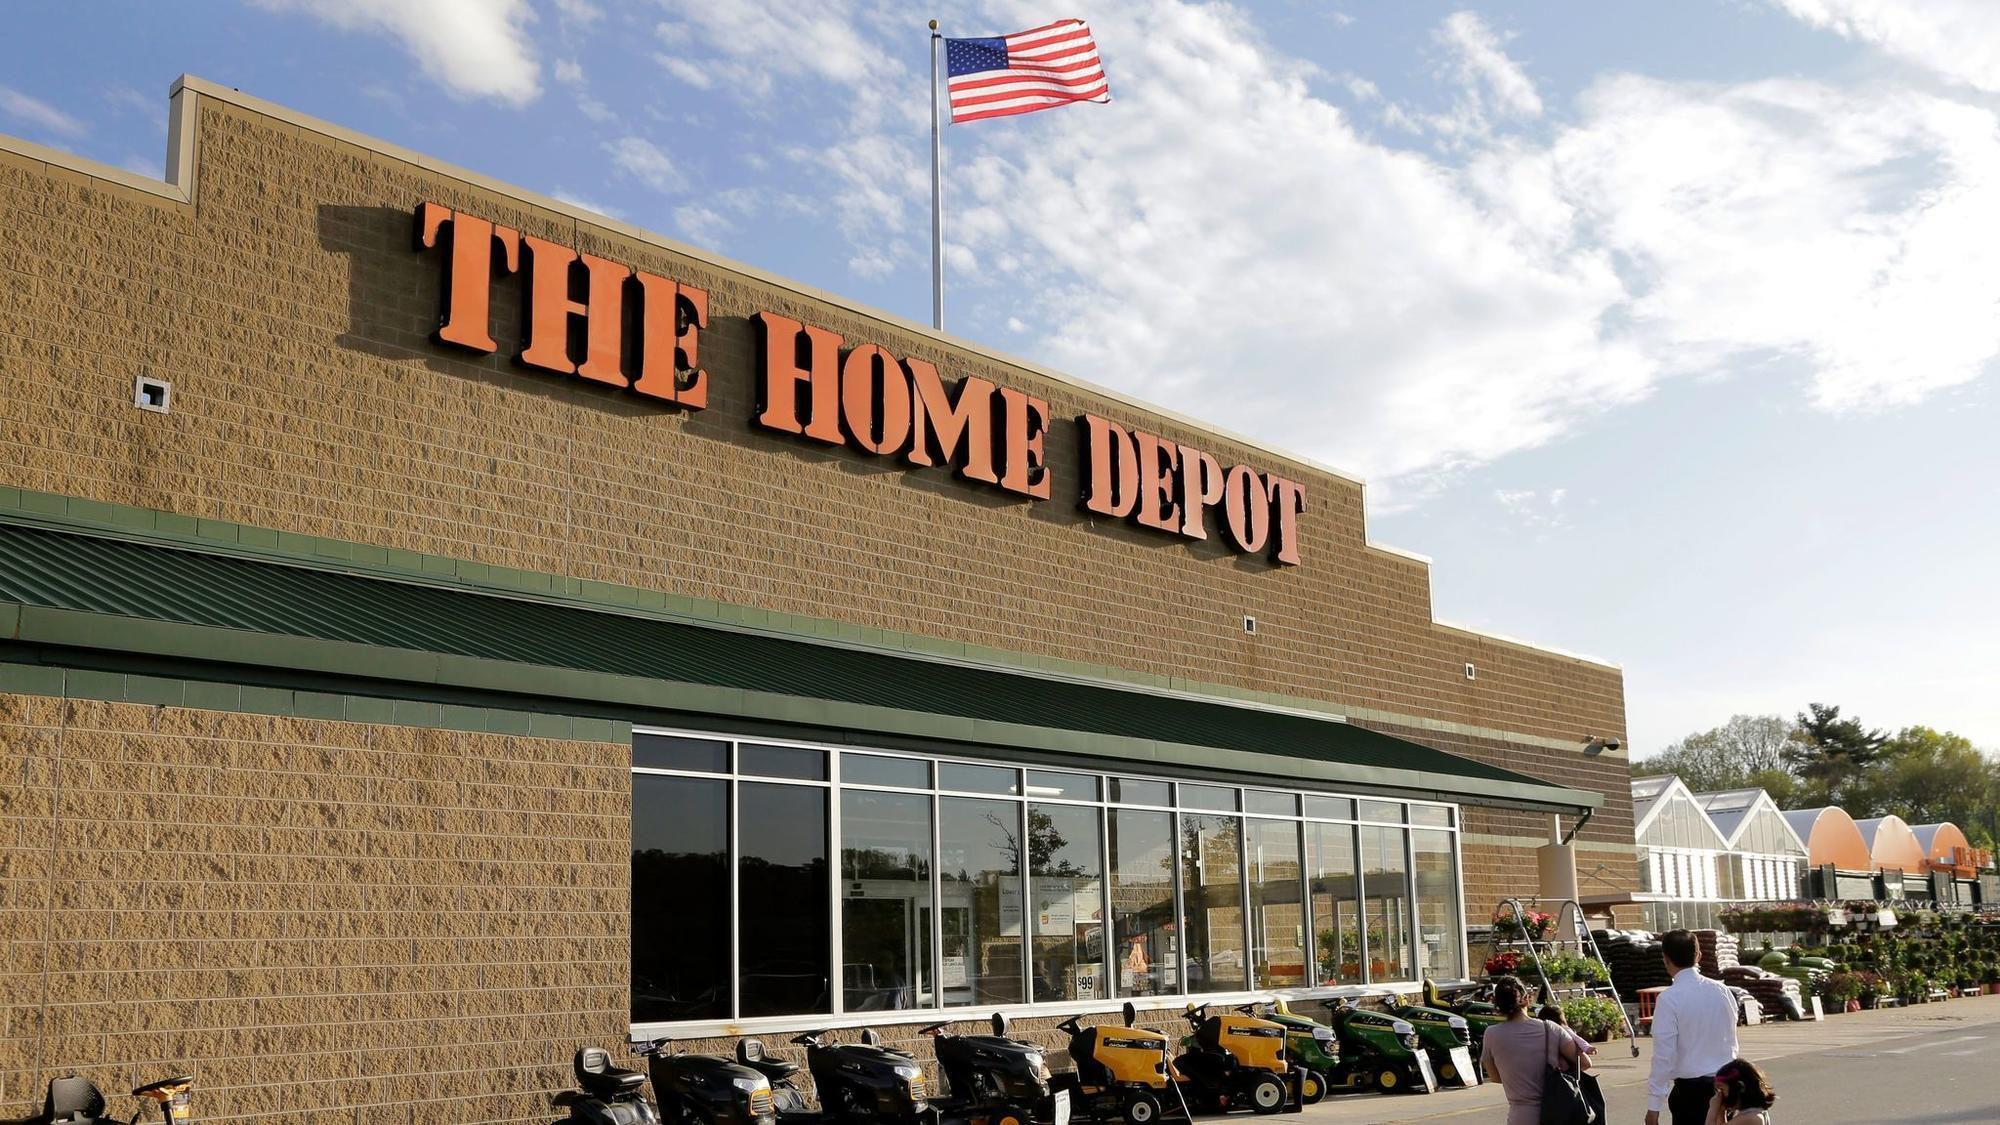 Home Depot s online push continues with purchase of The Company Store    Chicago Tribune. Home Depot s online push continues with purchase of The Company